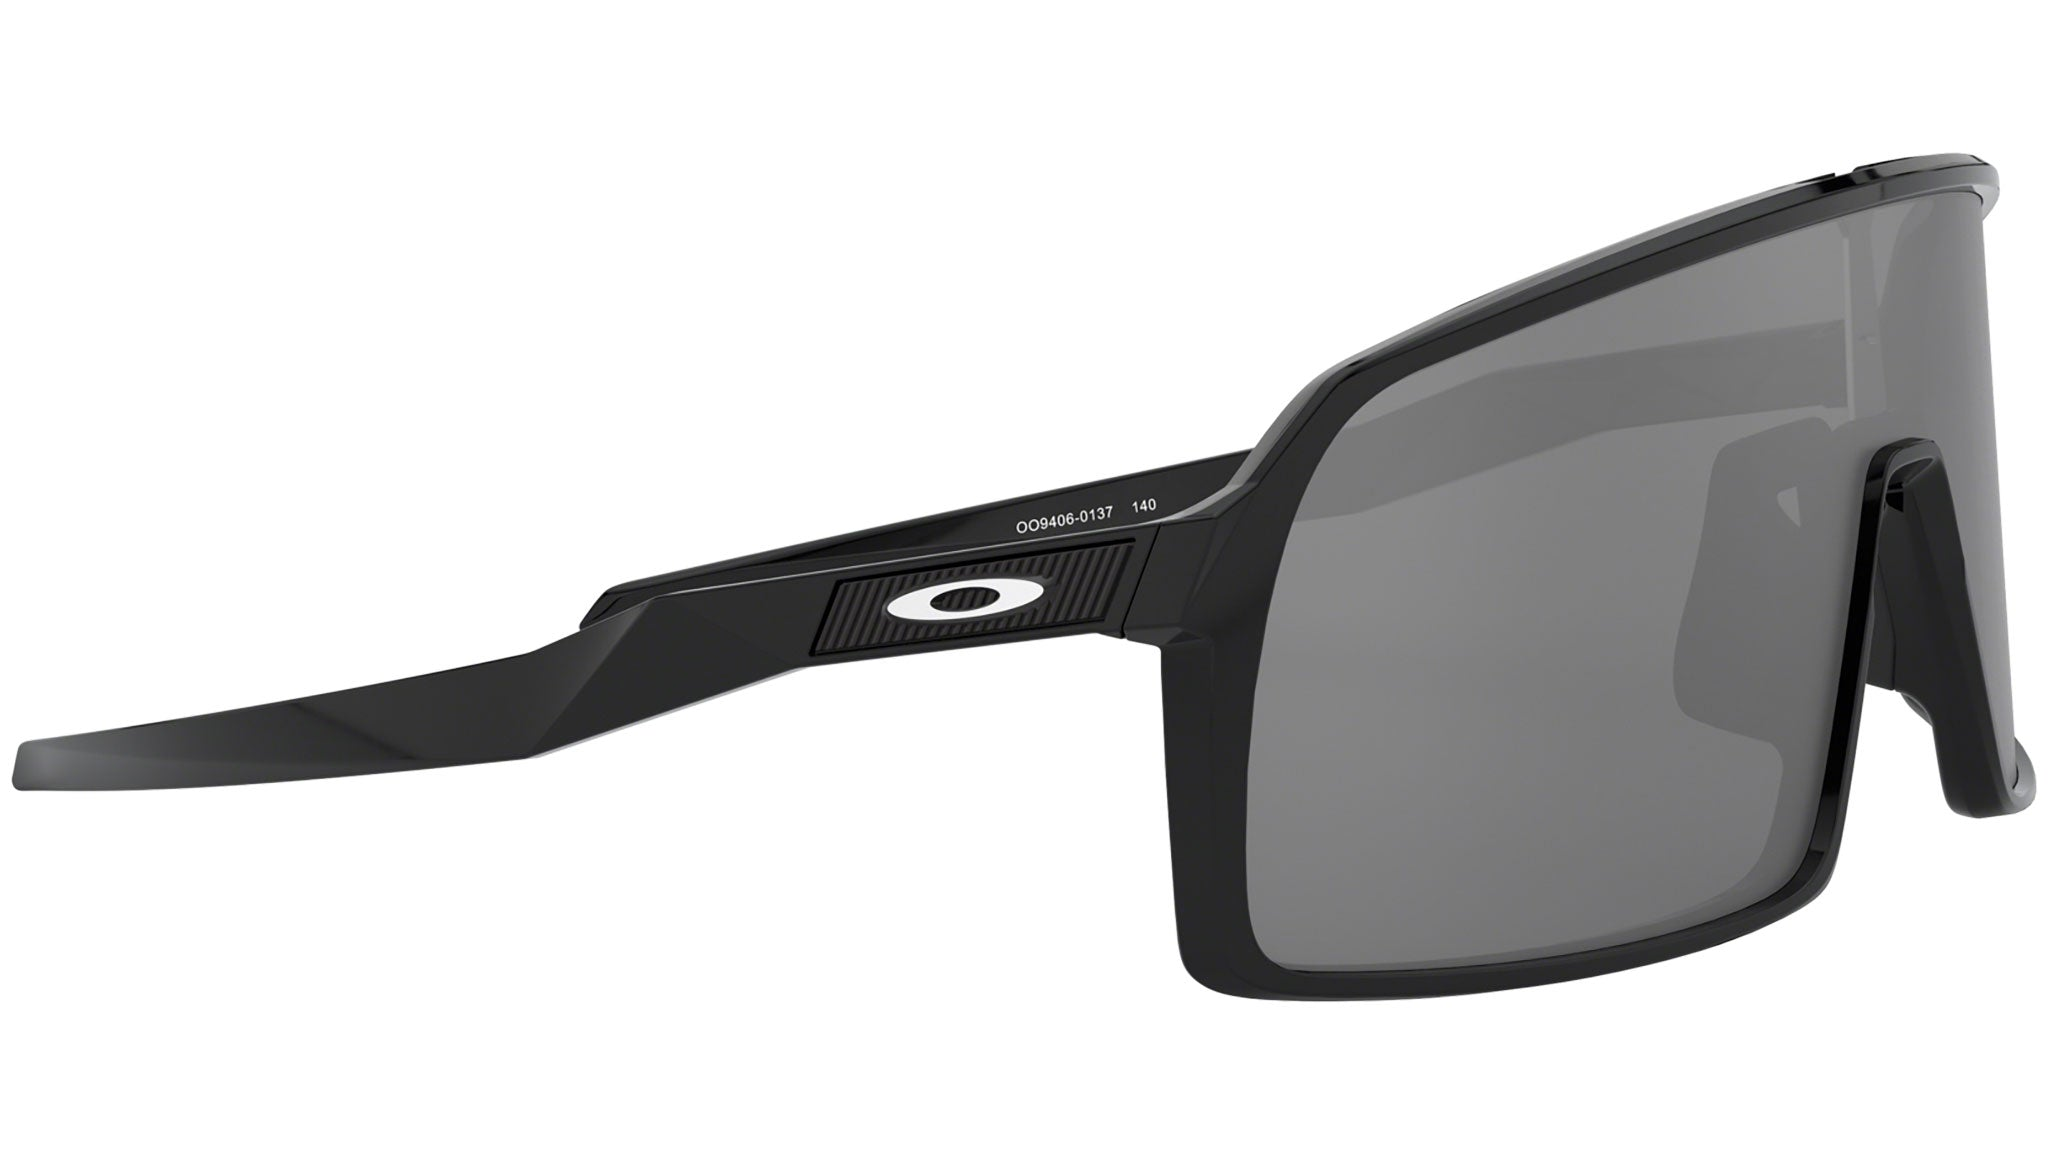 Sutro OO9406 01 polished black